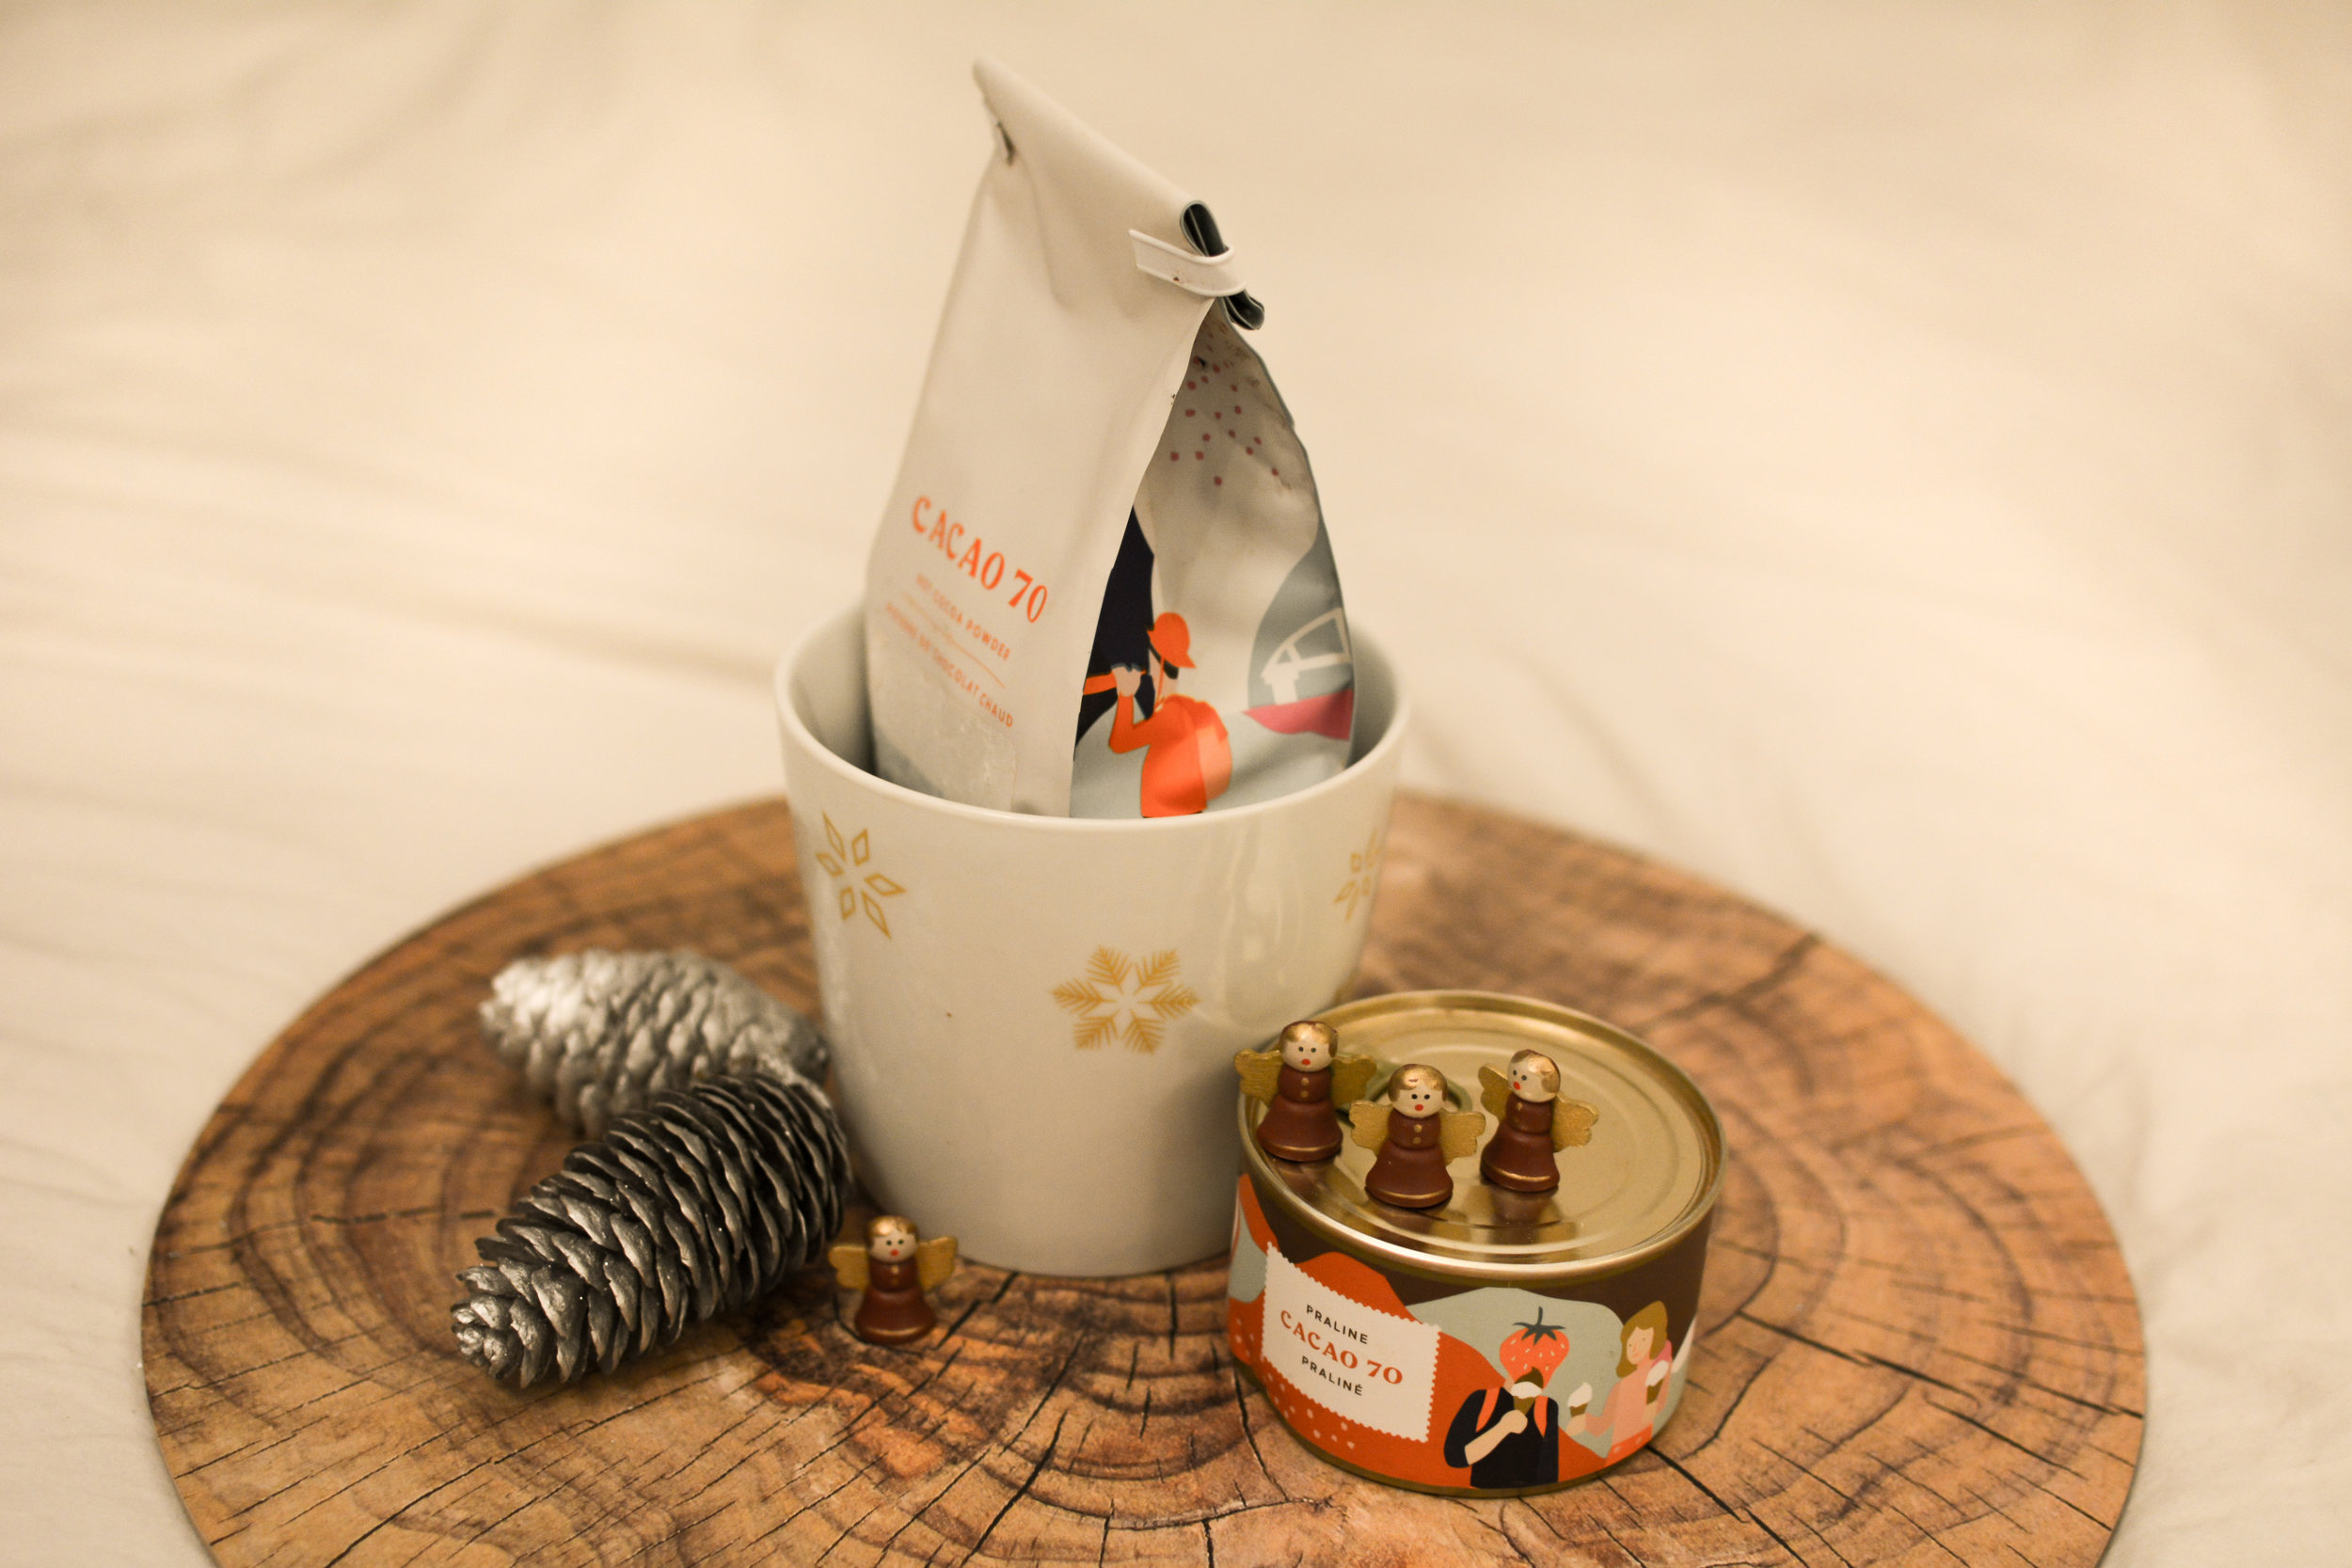 Cacao 70 Bundle   - The ultimate gift idea for the real foodie. The hot chocolate is exquisite and tastes like happiness in a cup . You should definitely try it!